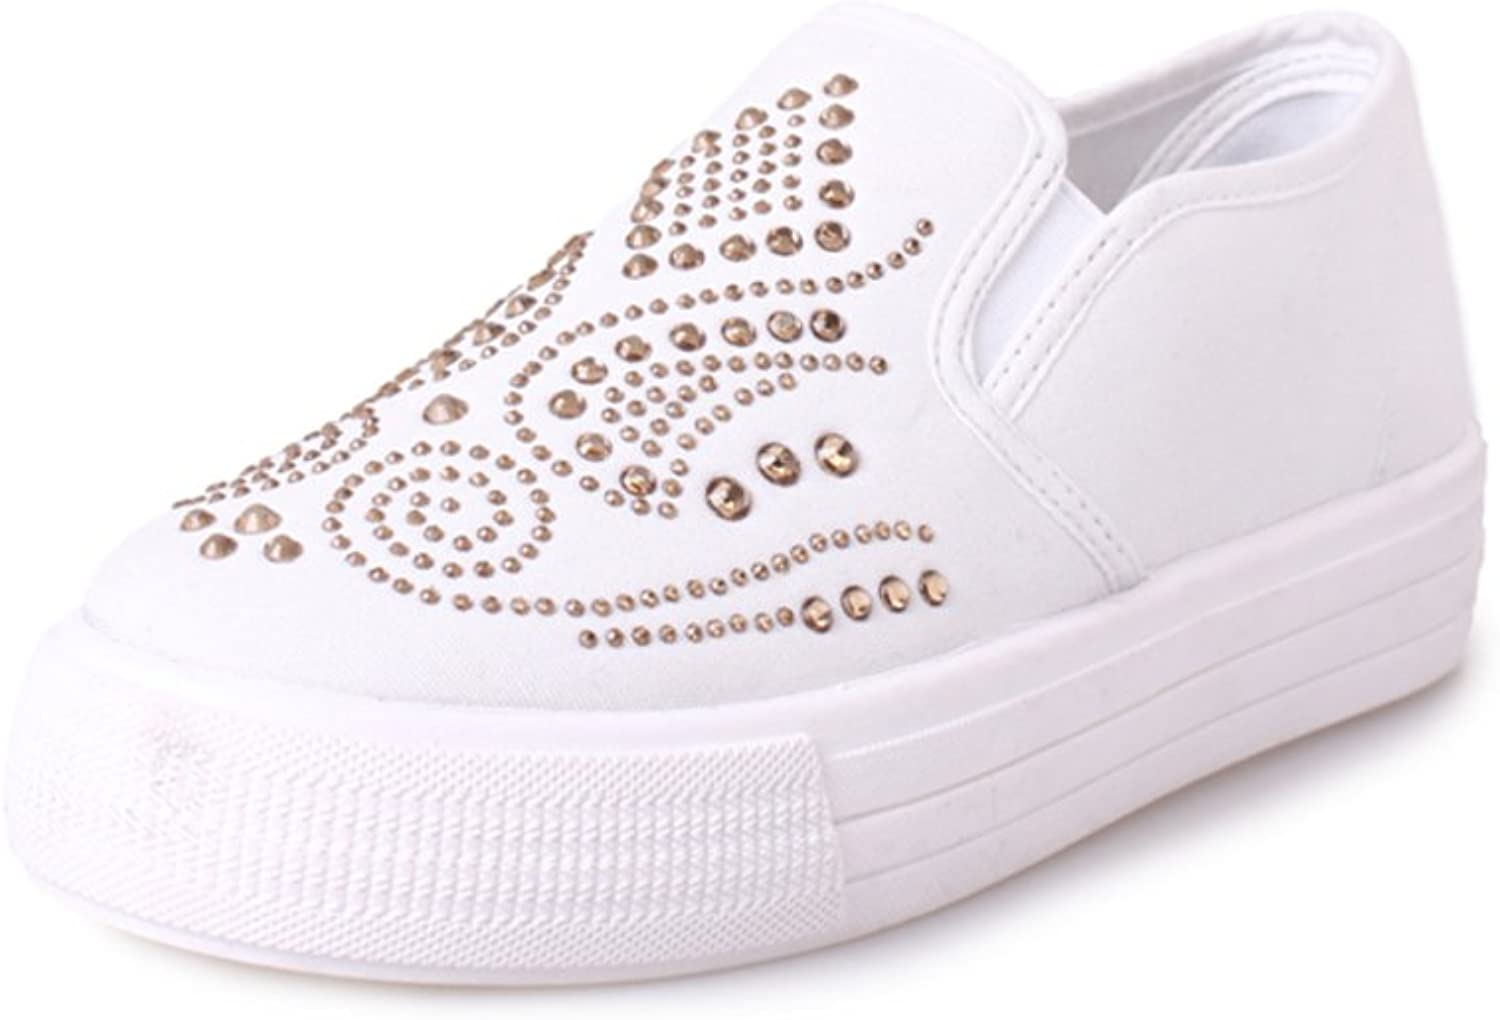 Huhuj Spring low thick-soled canvas shoes Leisure shoes